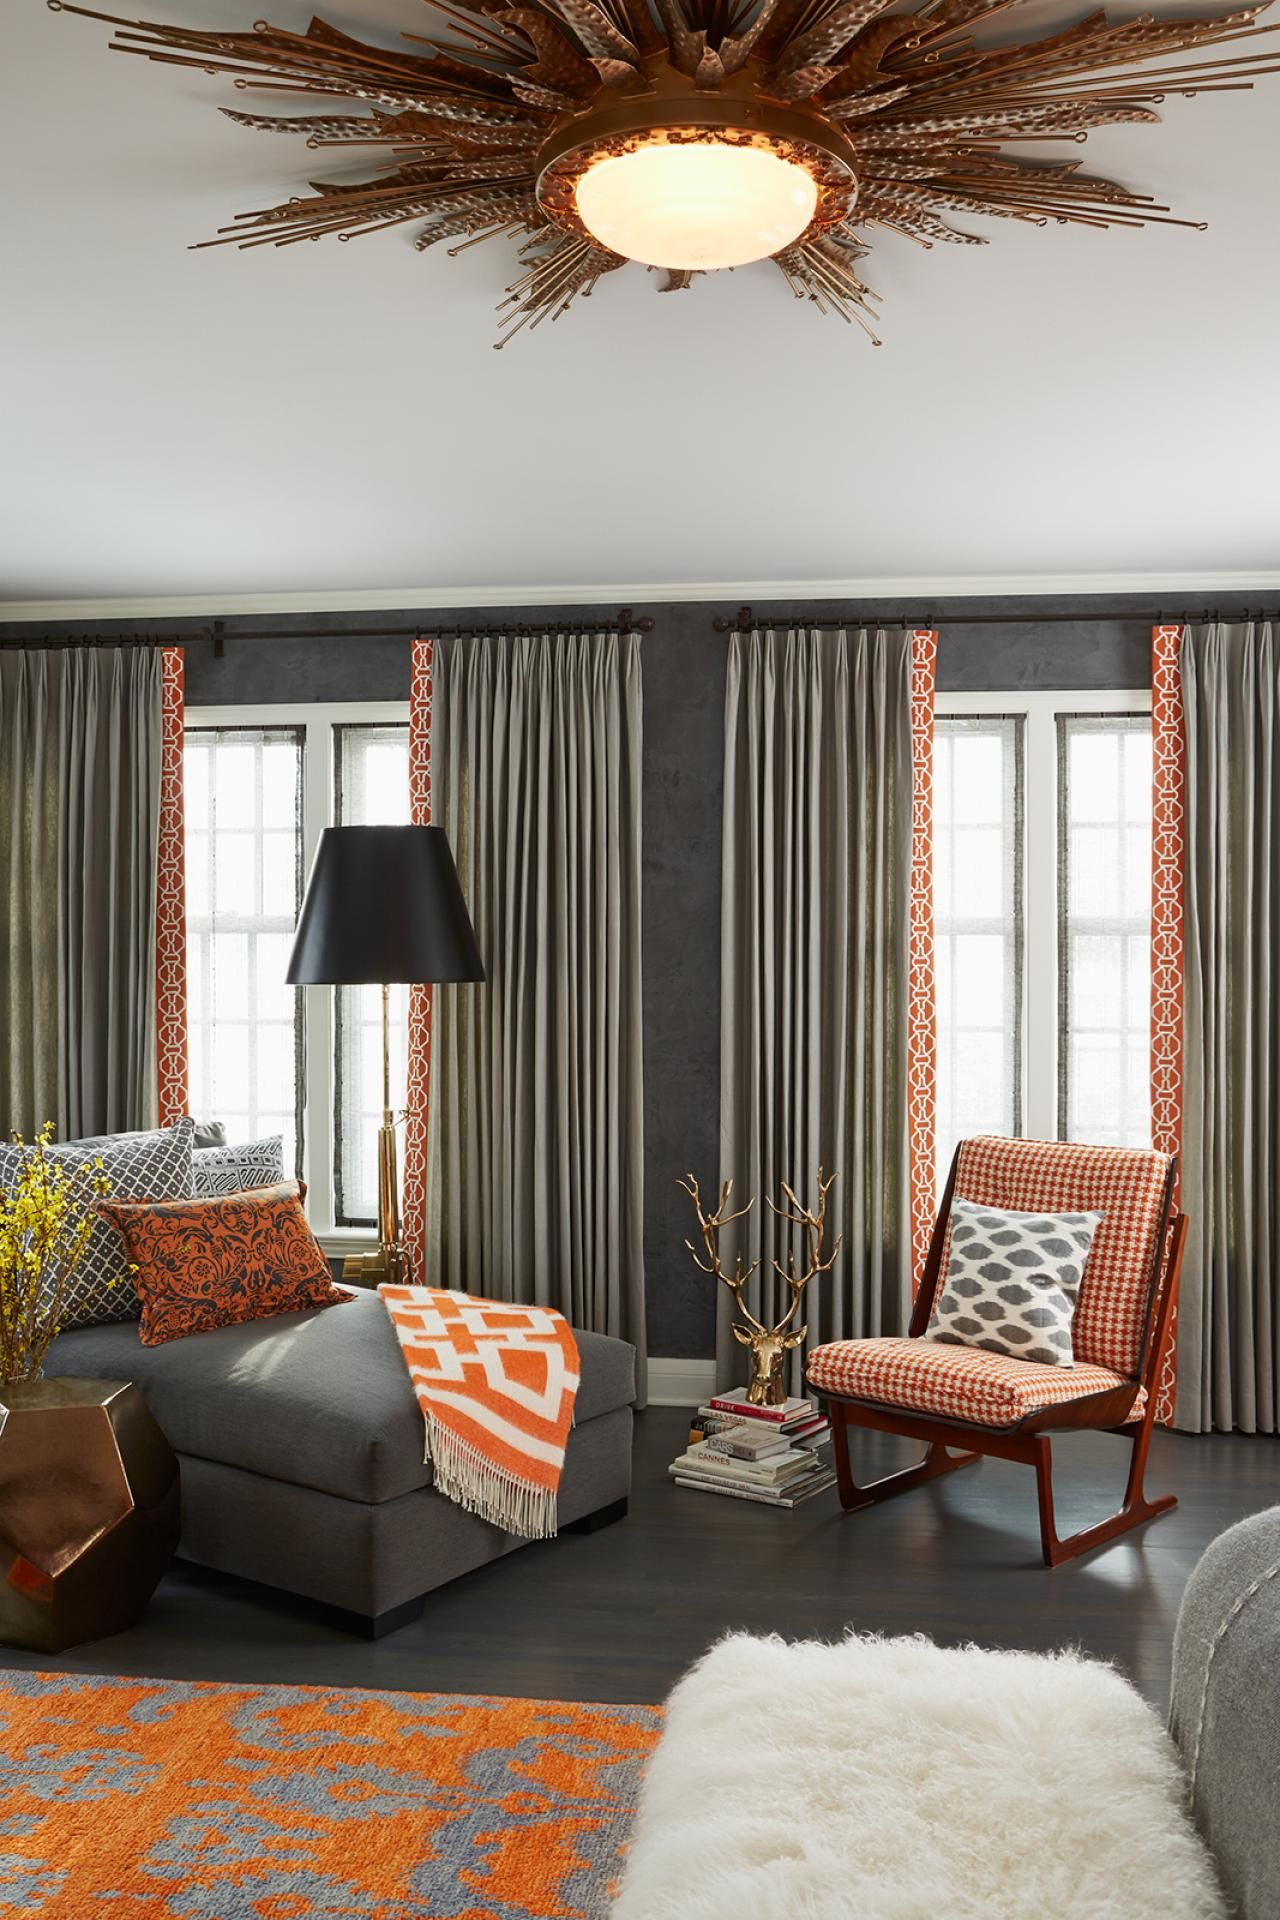 Decorating With Orange Orange Decorating Ideas Living